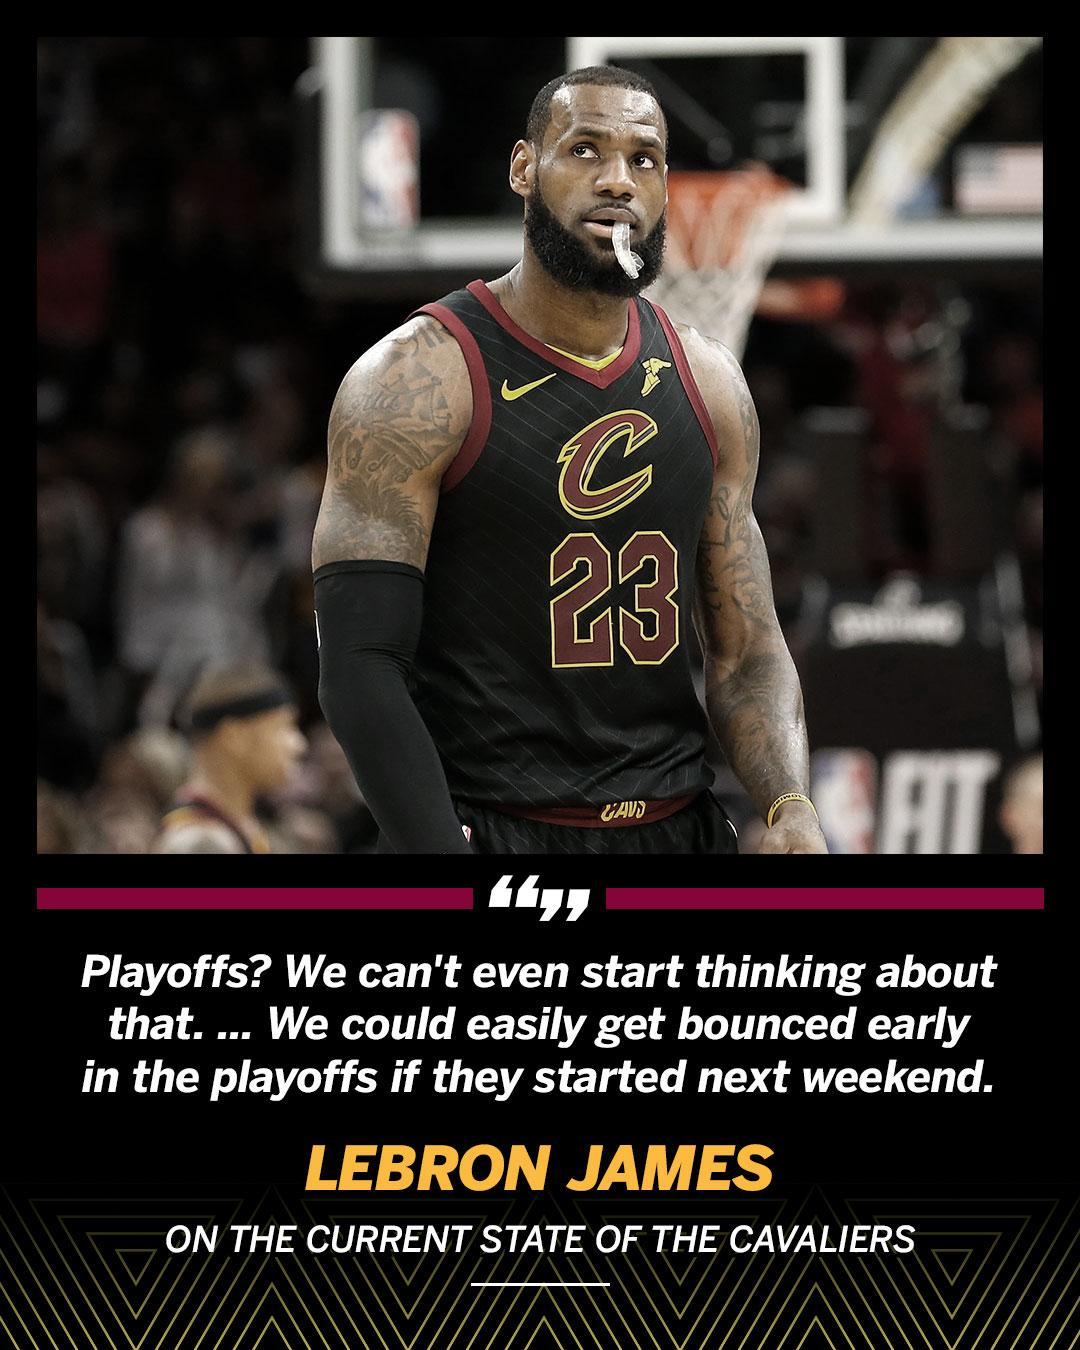 LeBron is worried about the next game, not the playoffs. https://t.co/wzk2WlbX7G